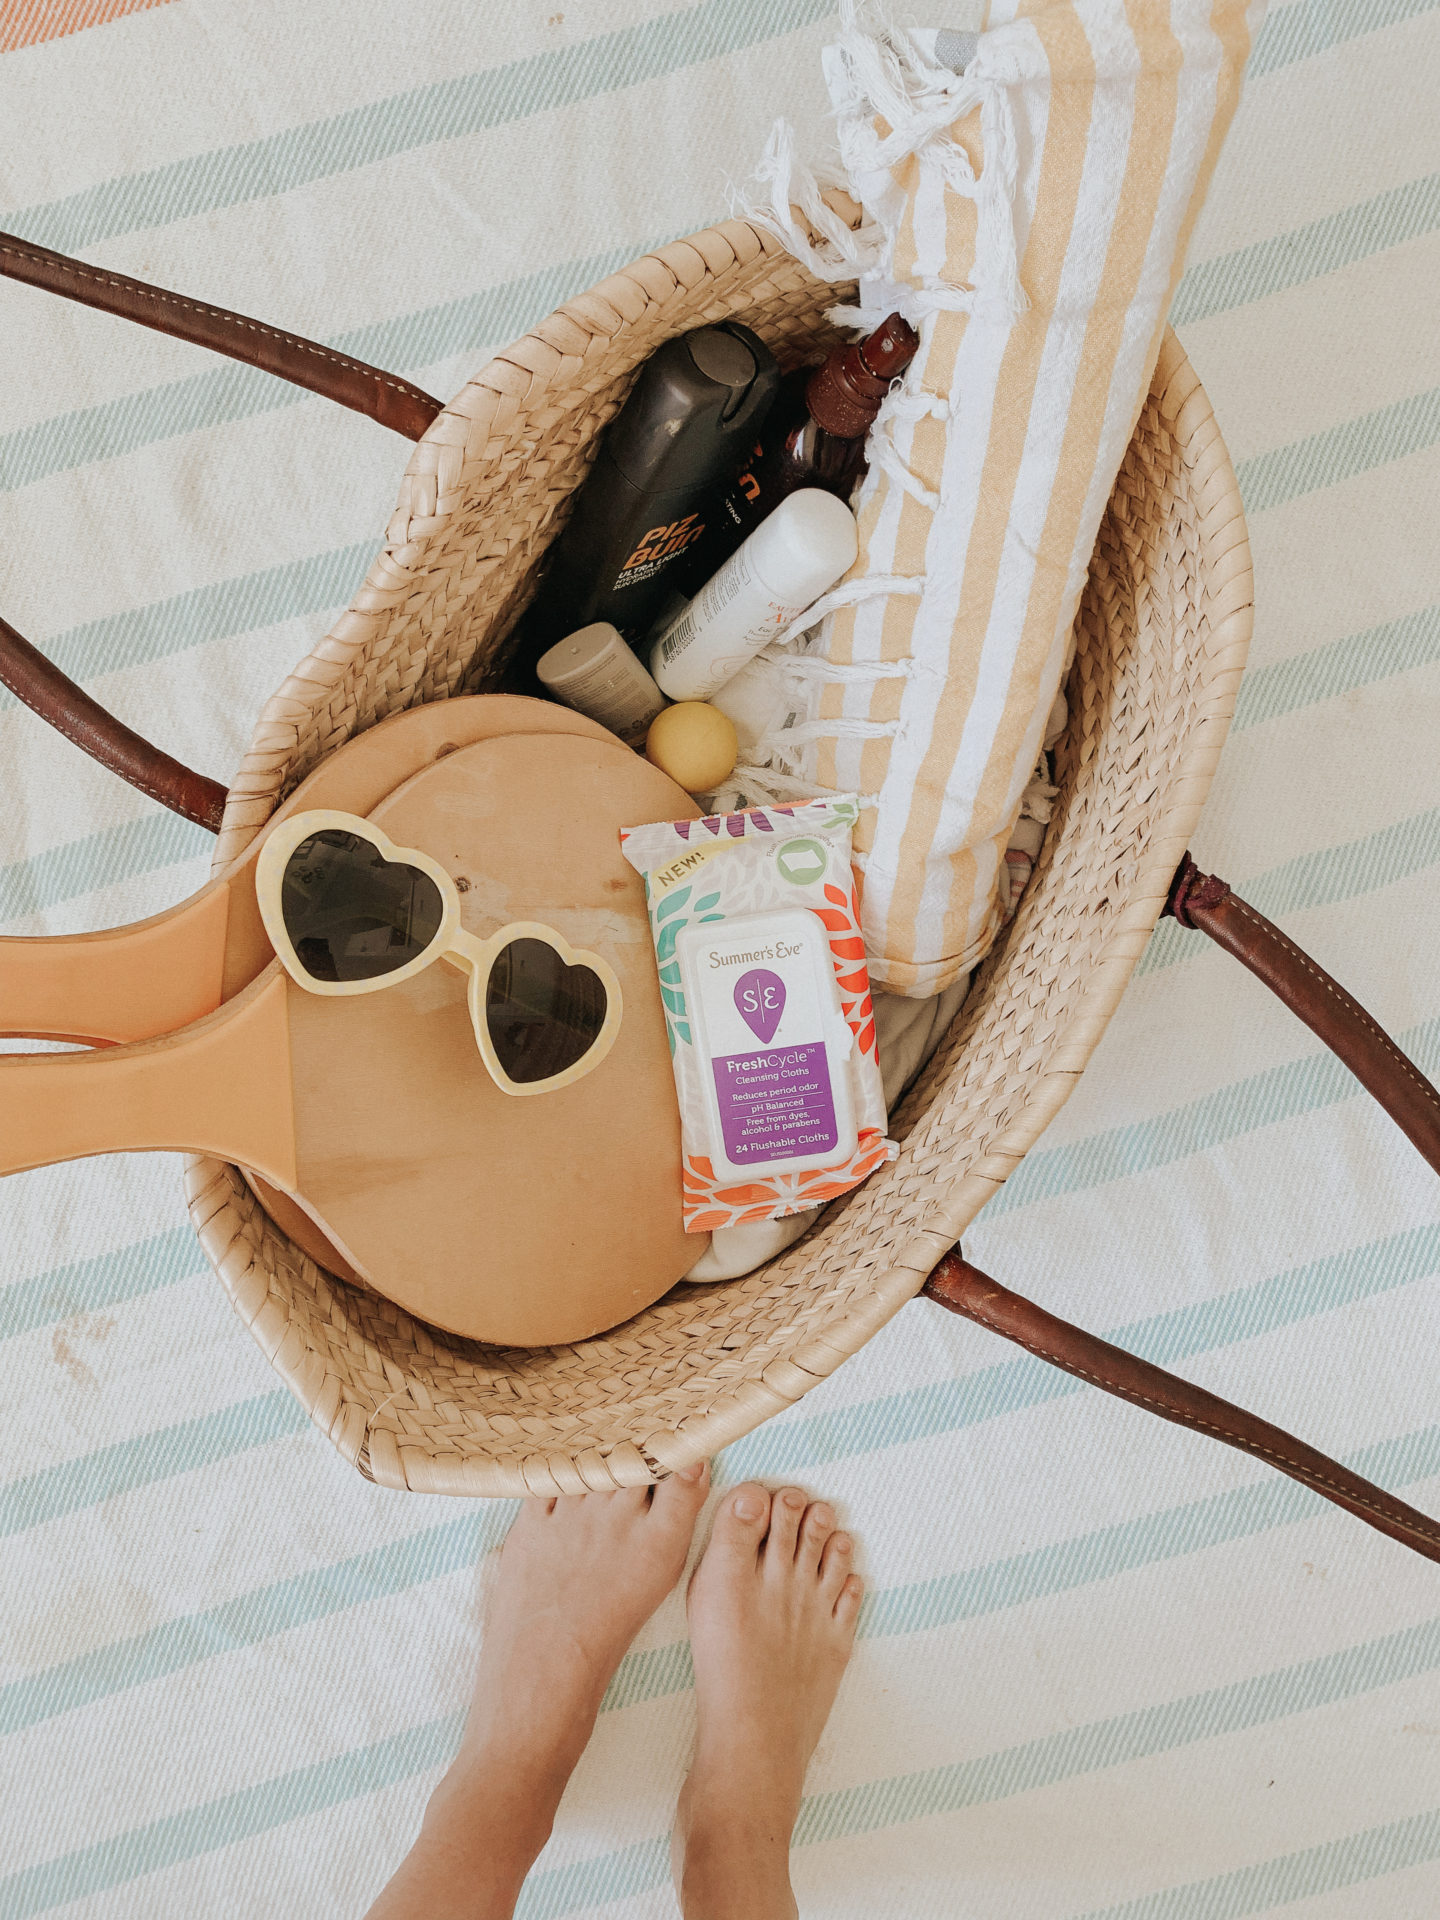 Summers Eve FreshCycle Cleansing Cloths in my beach bag!